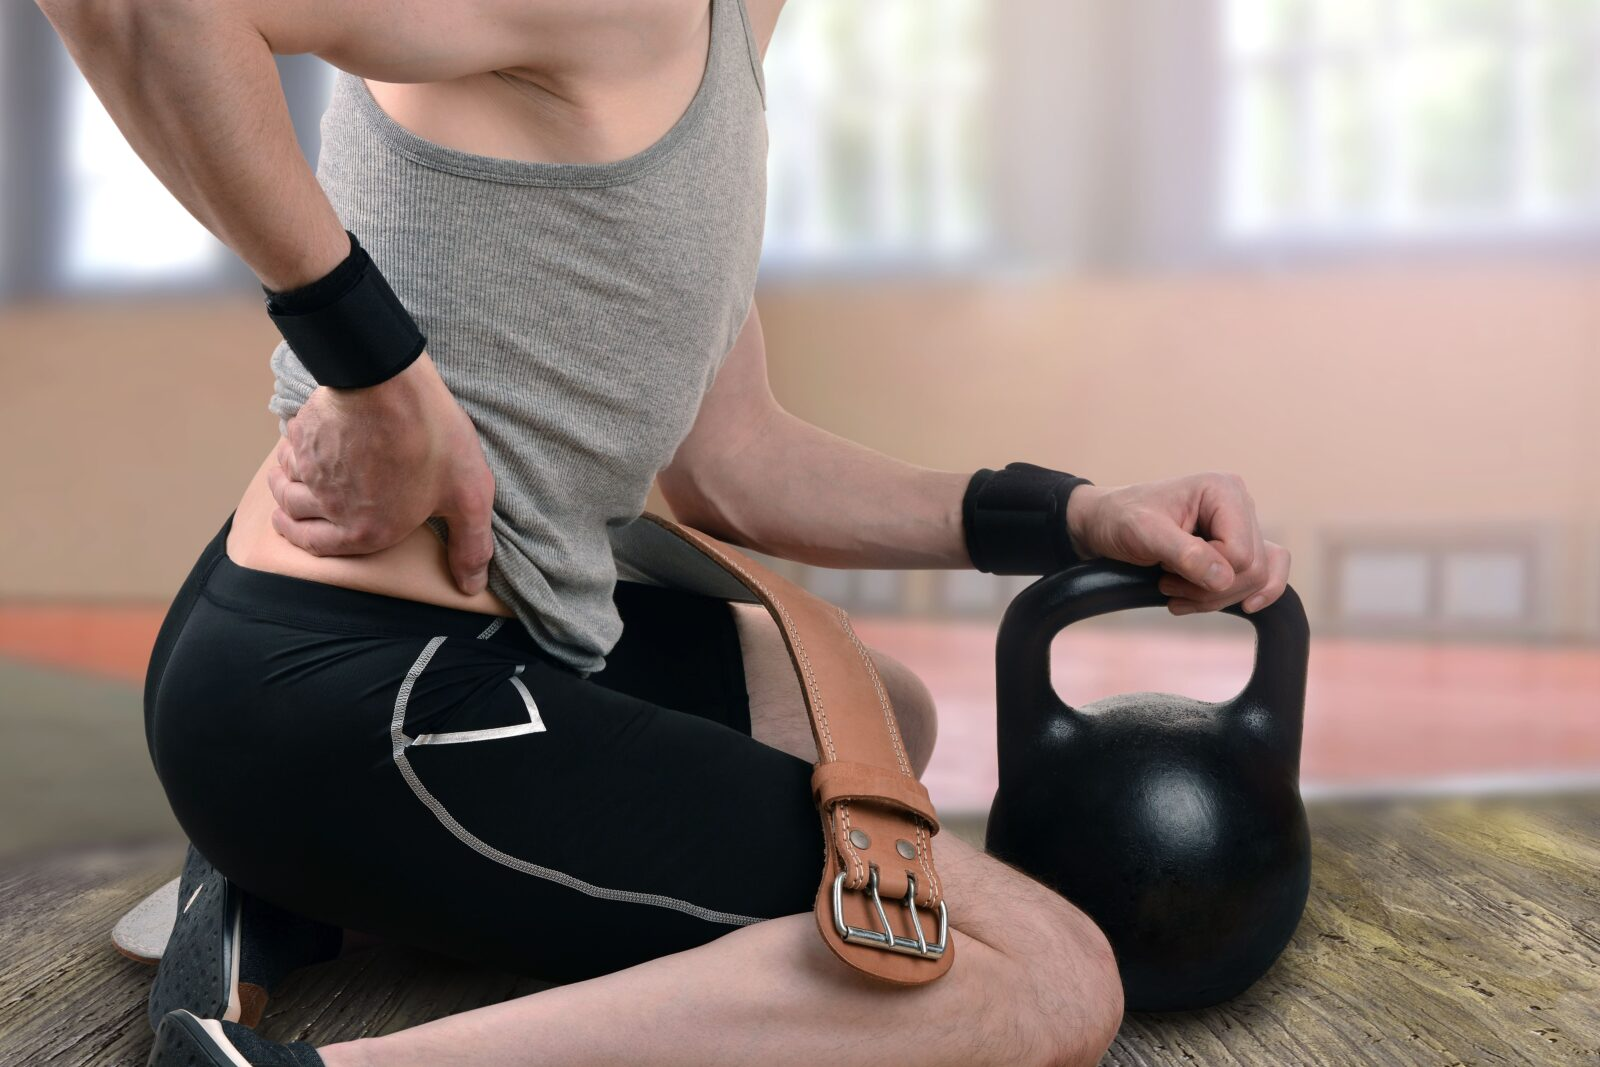 kneeling weight lifter clutching their lower back